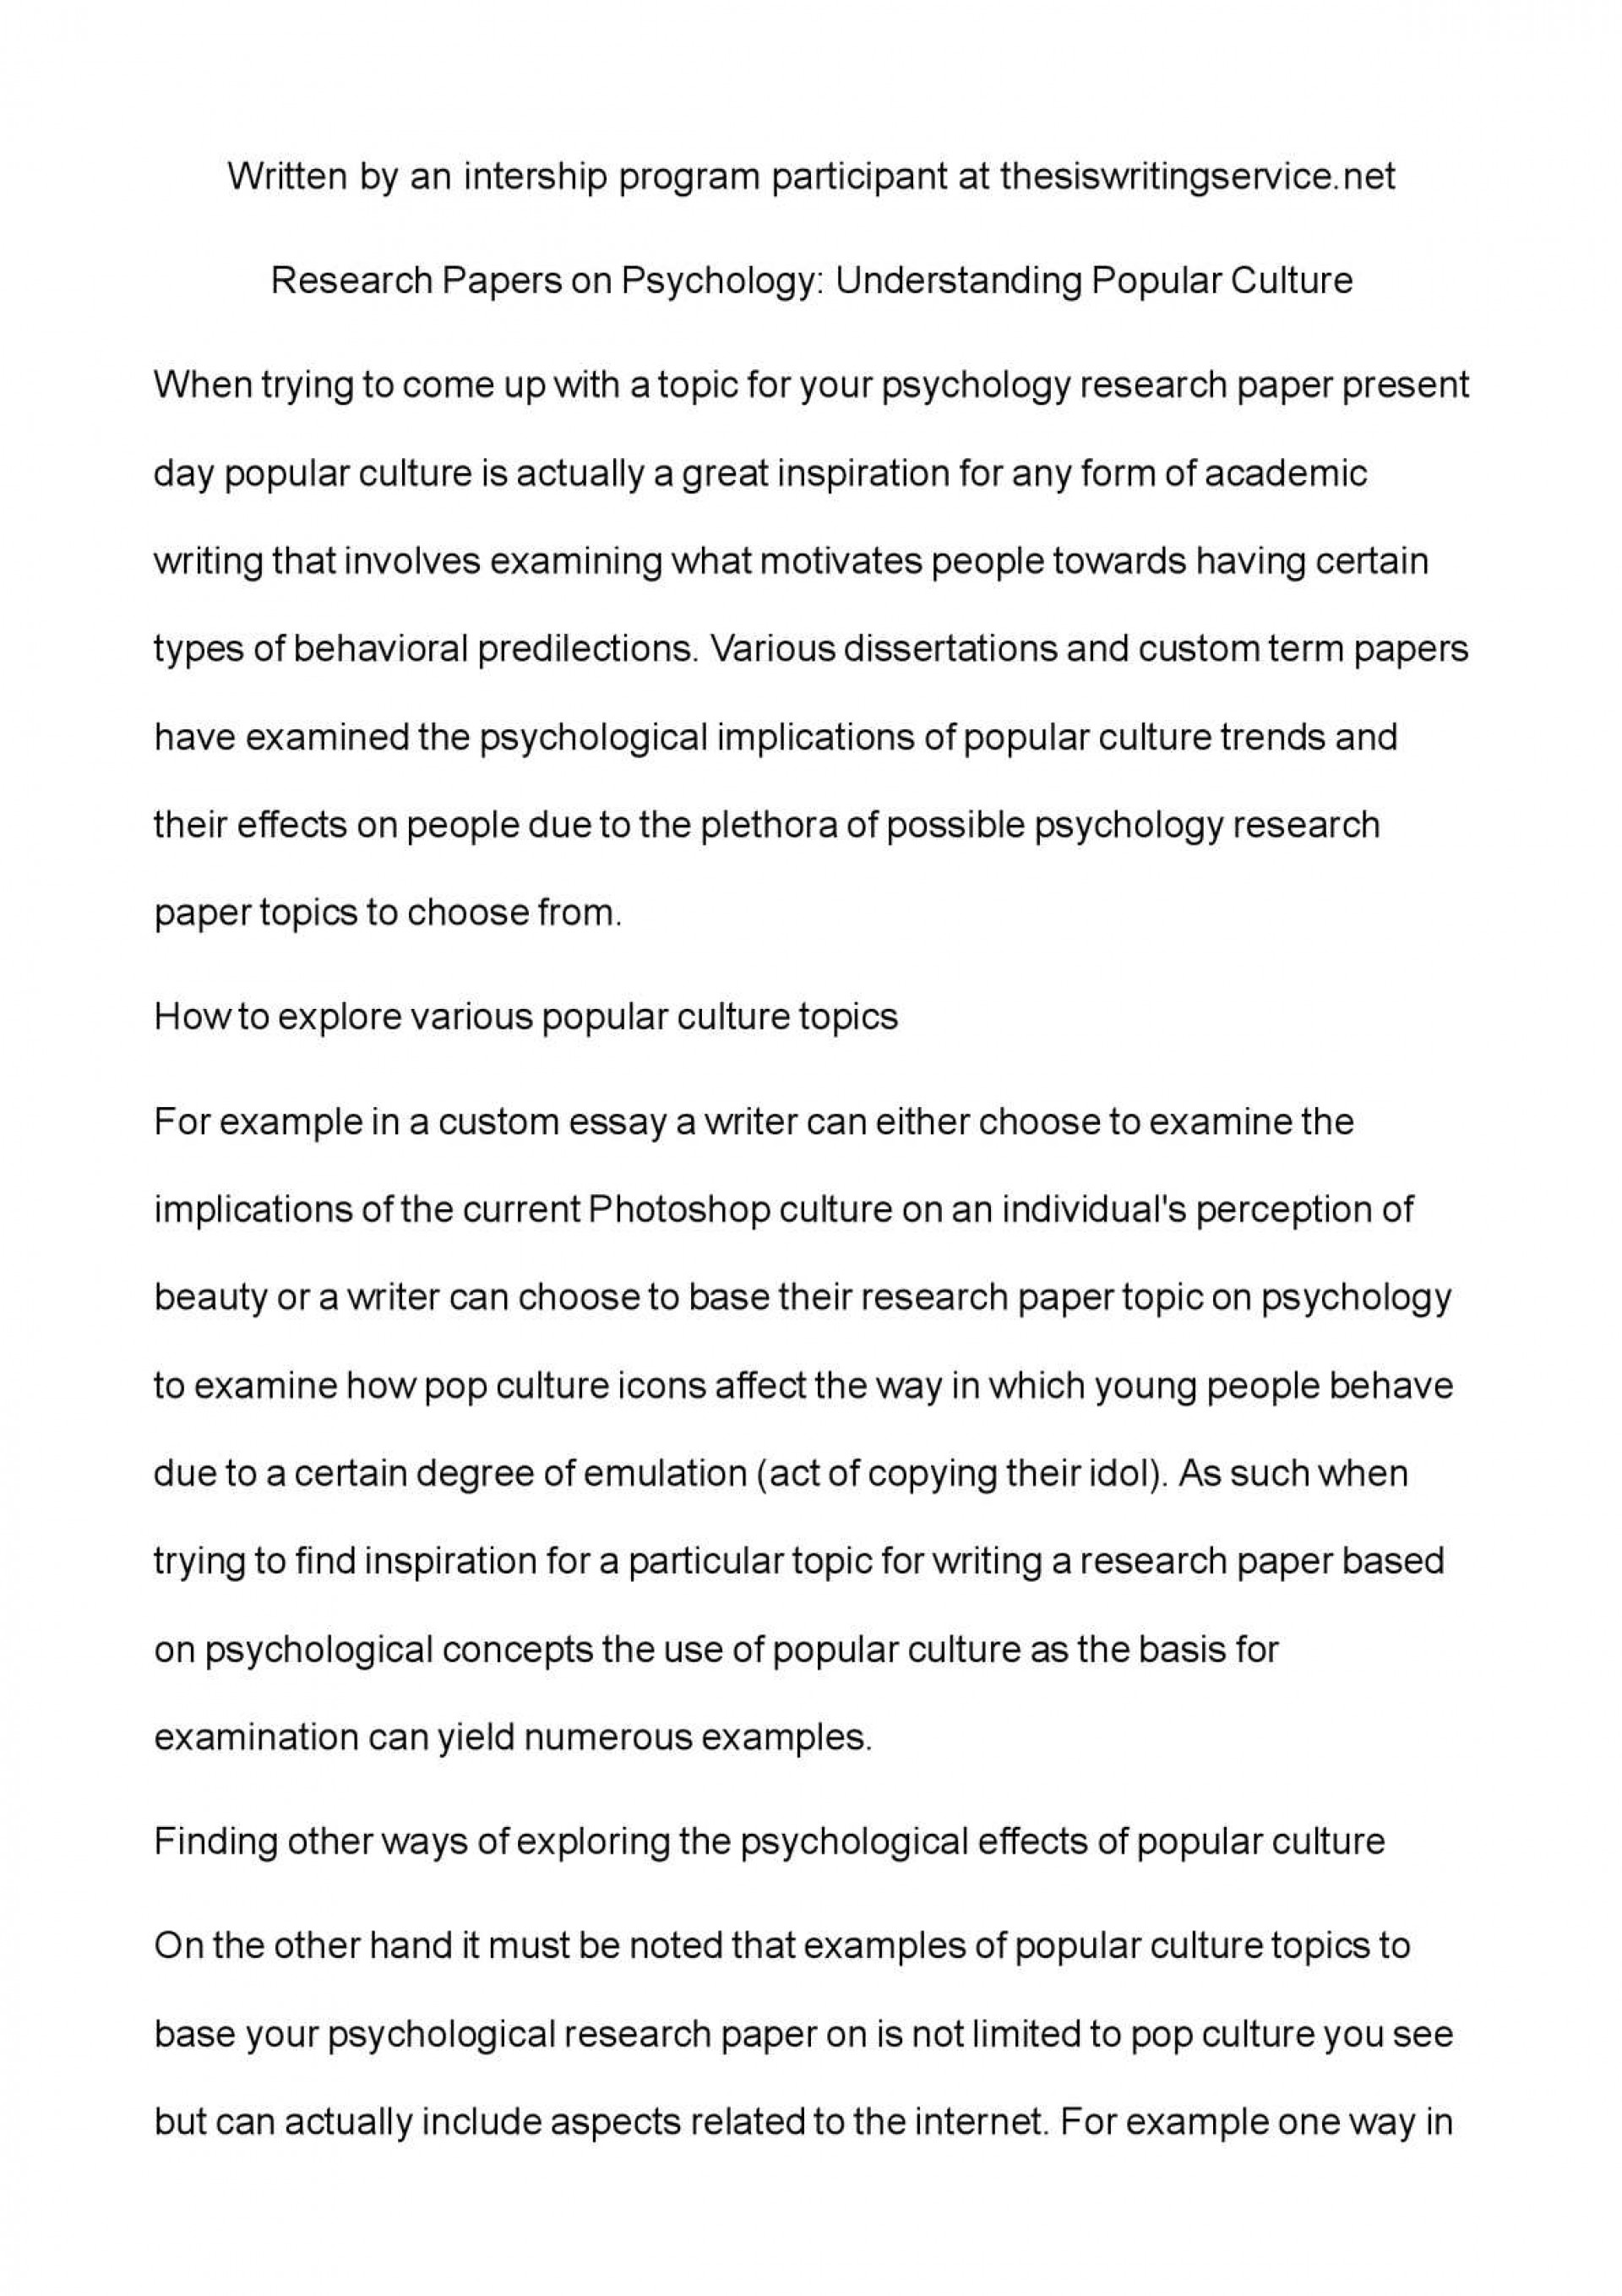 003 Research Paper Psychology Papers Surprising For Topic Examples Online 1920